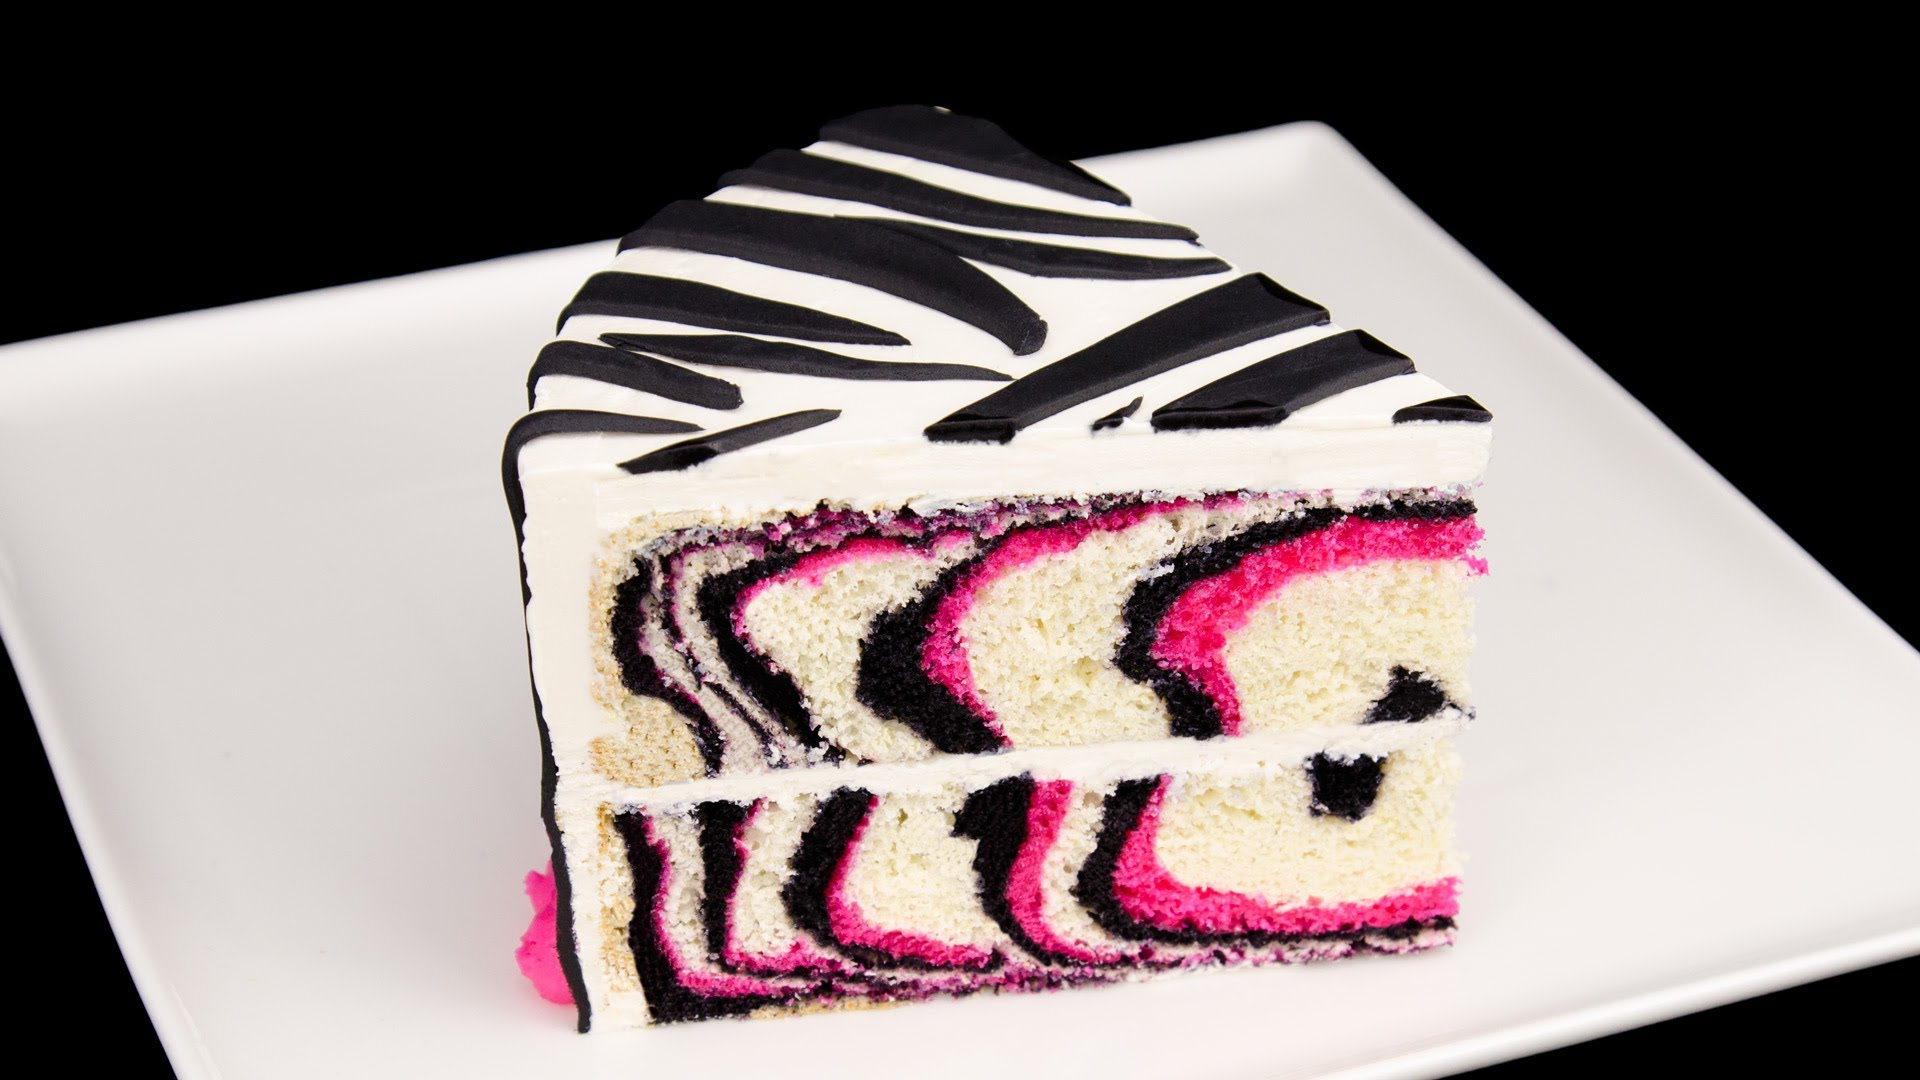 Surprise Your Little Girl With This Amazing Cake – Become The Coolest Mom Ever